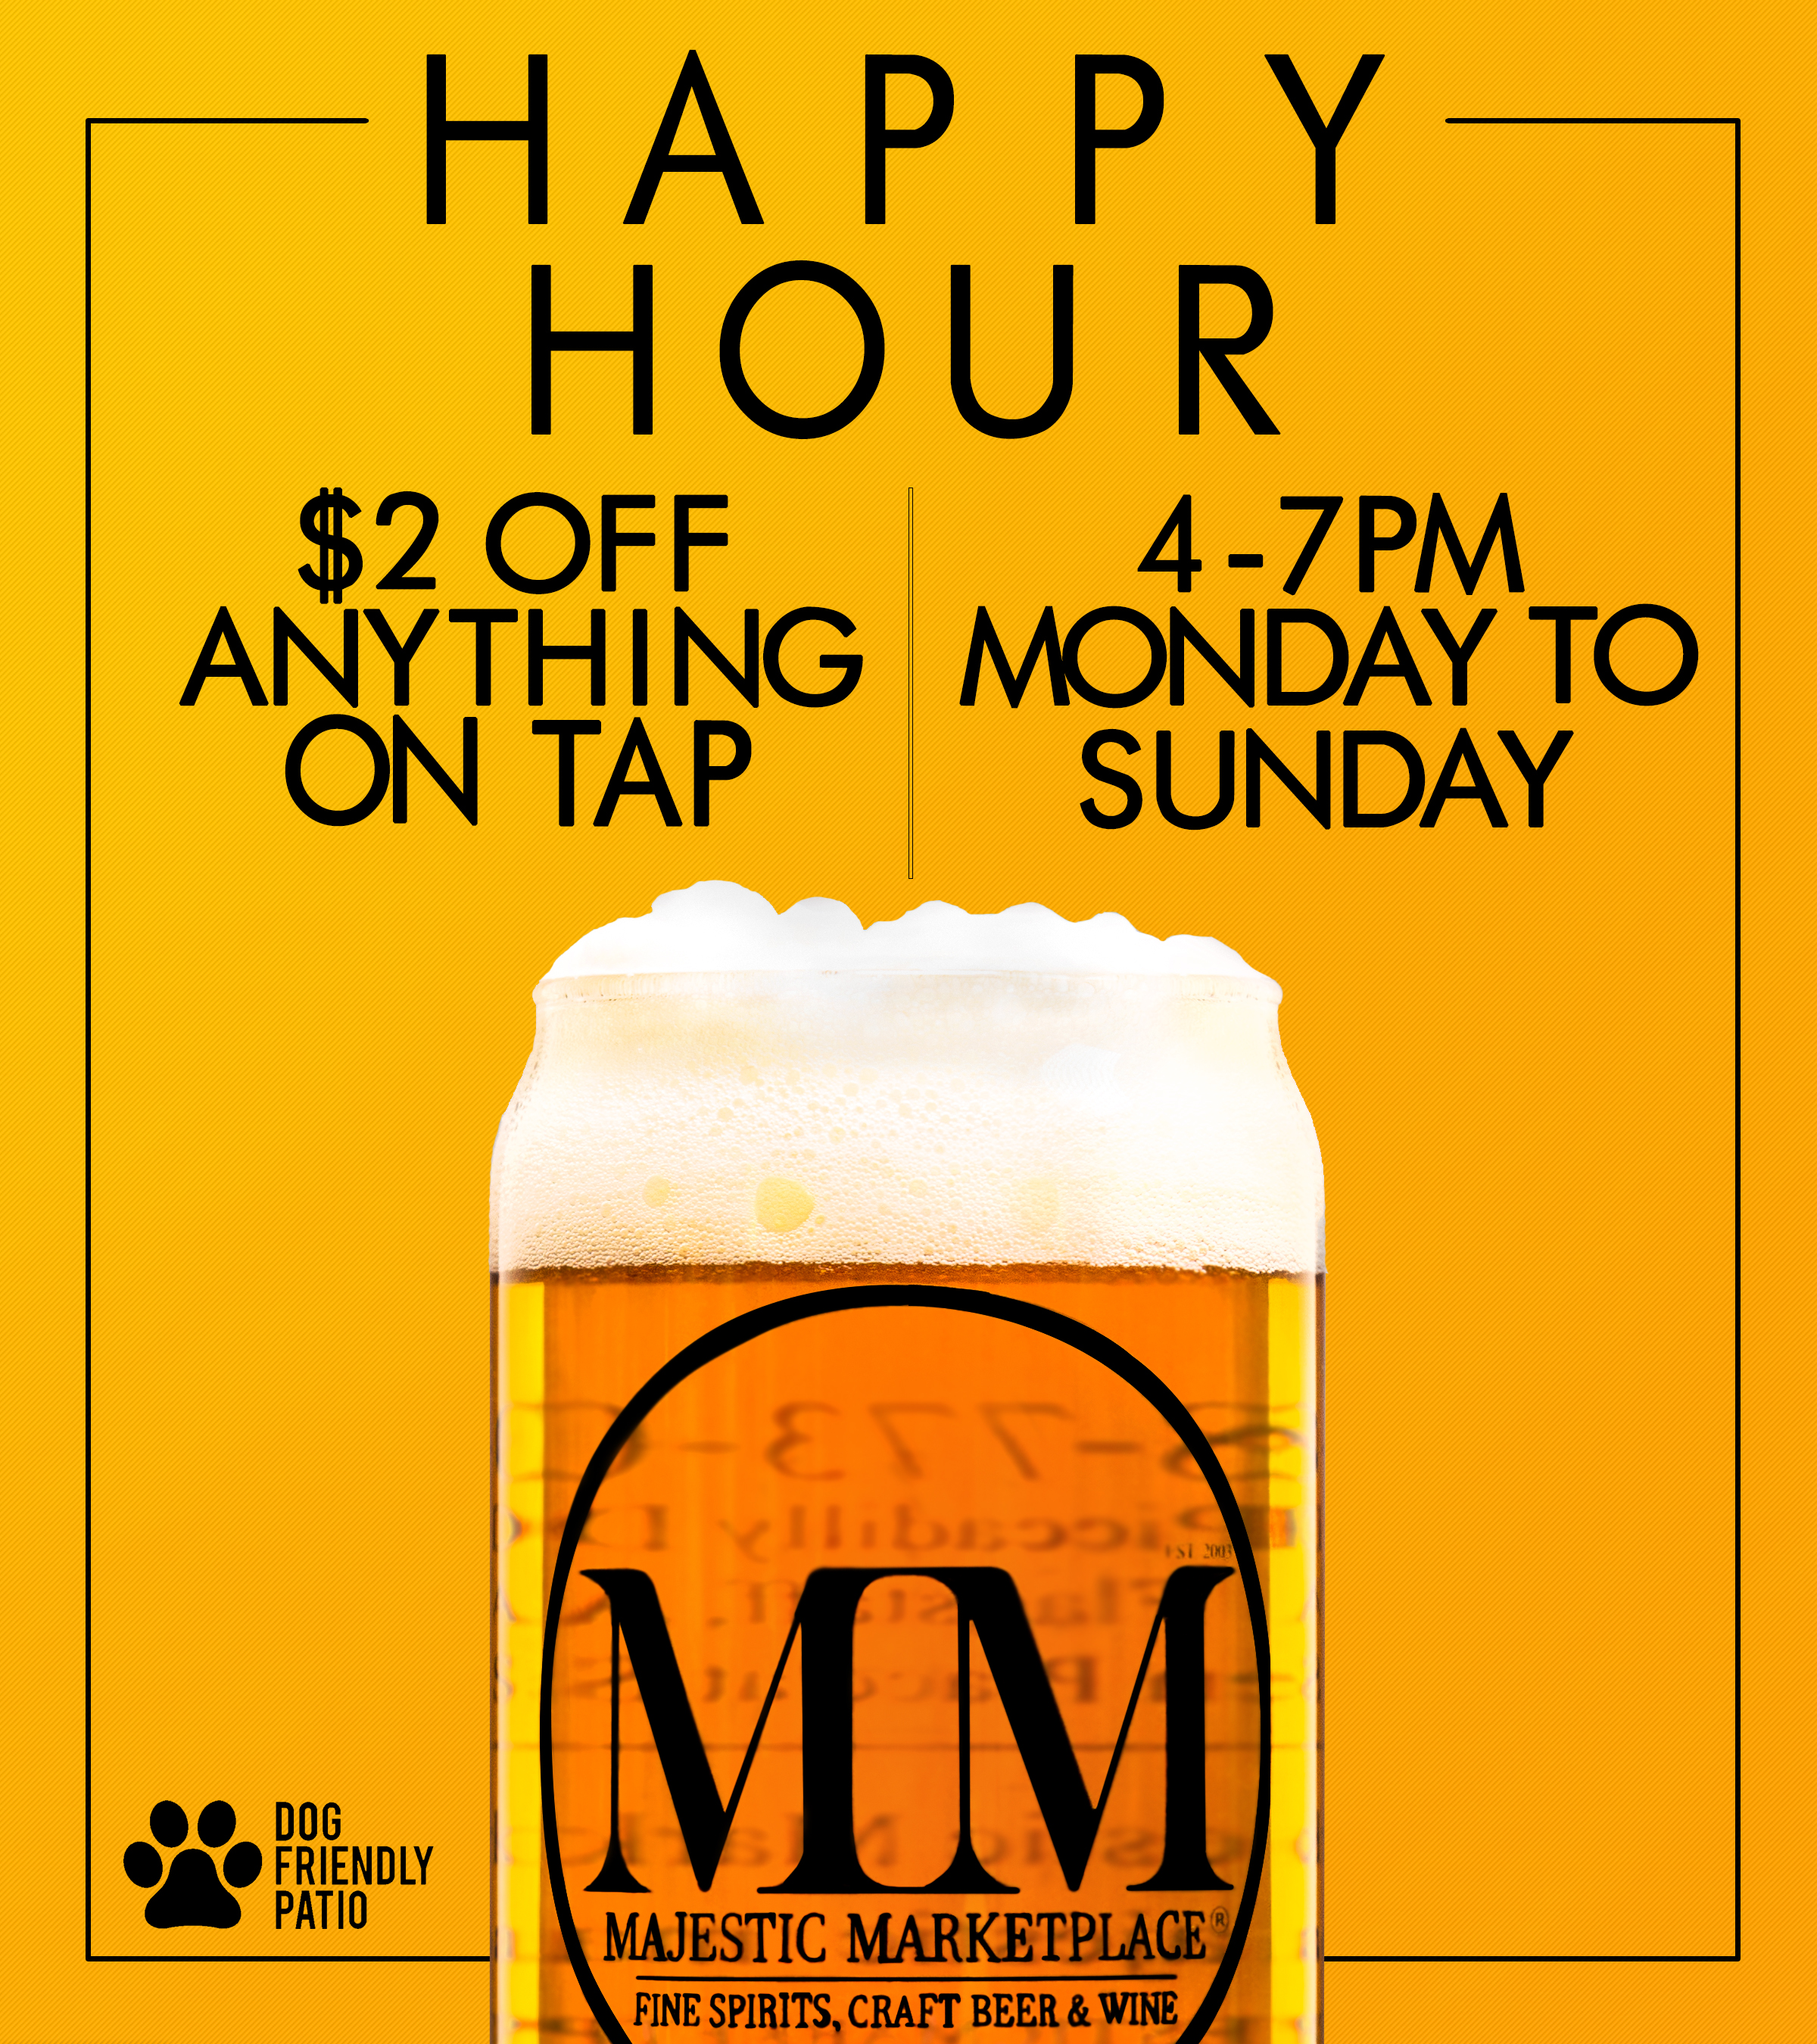 Majestic Marketplace Happy Hour!